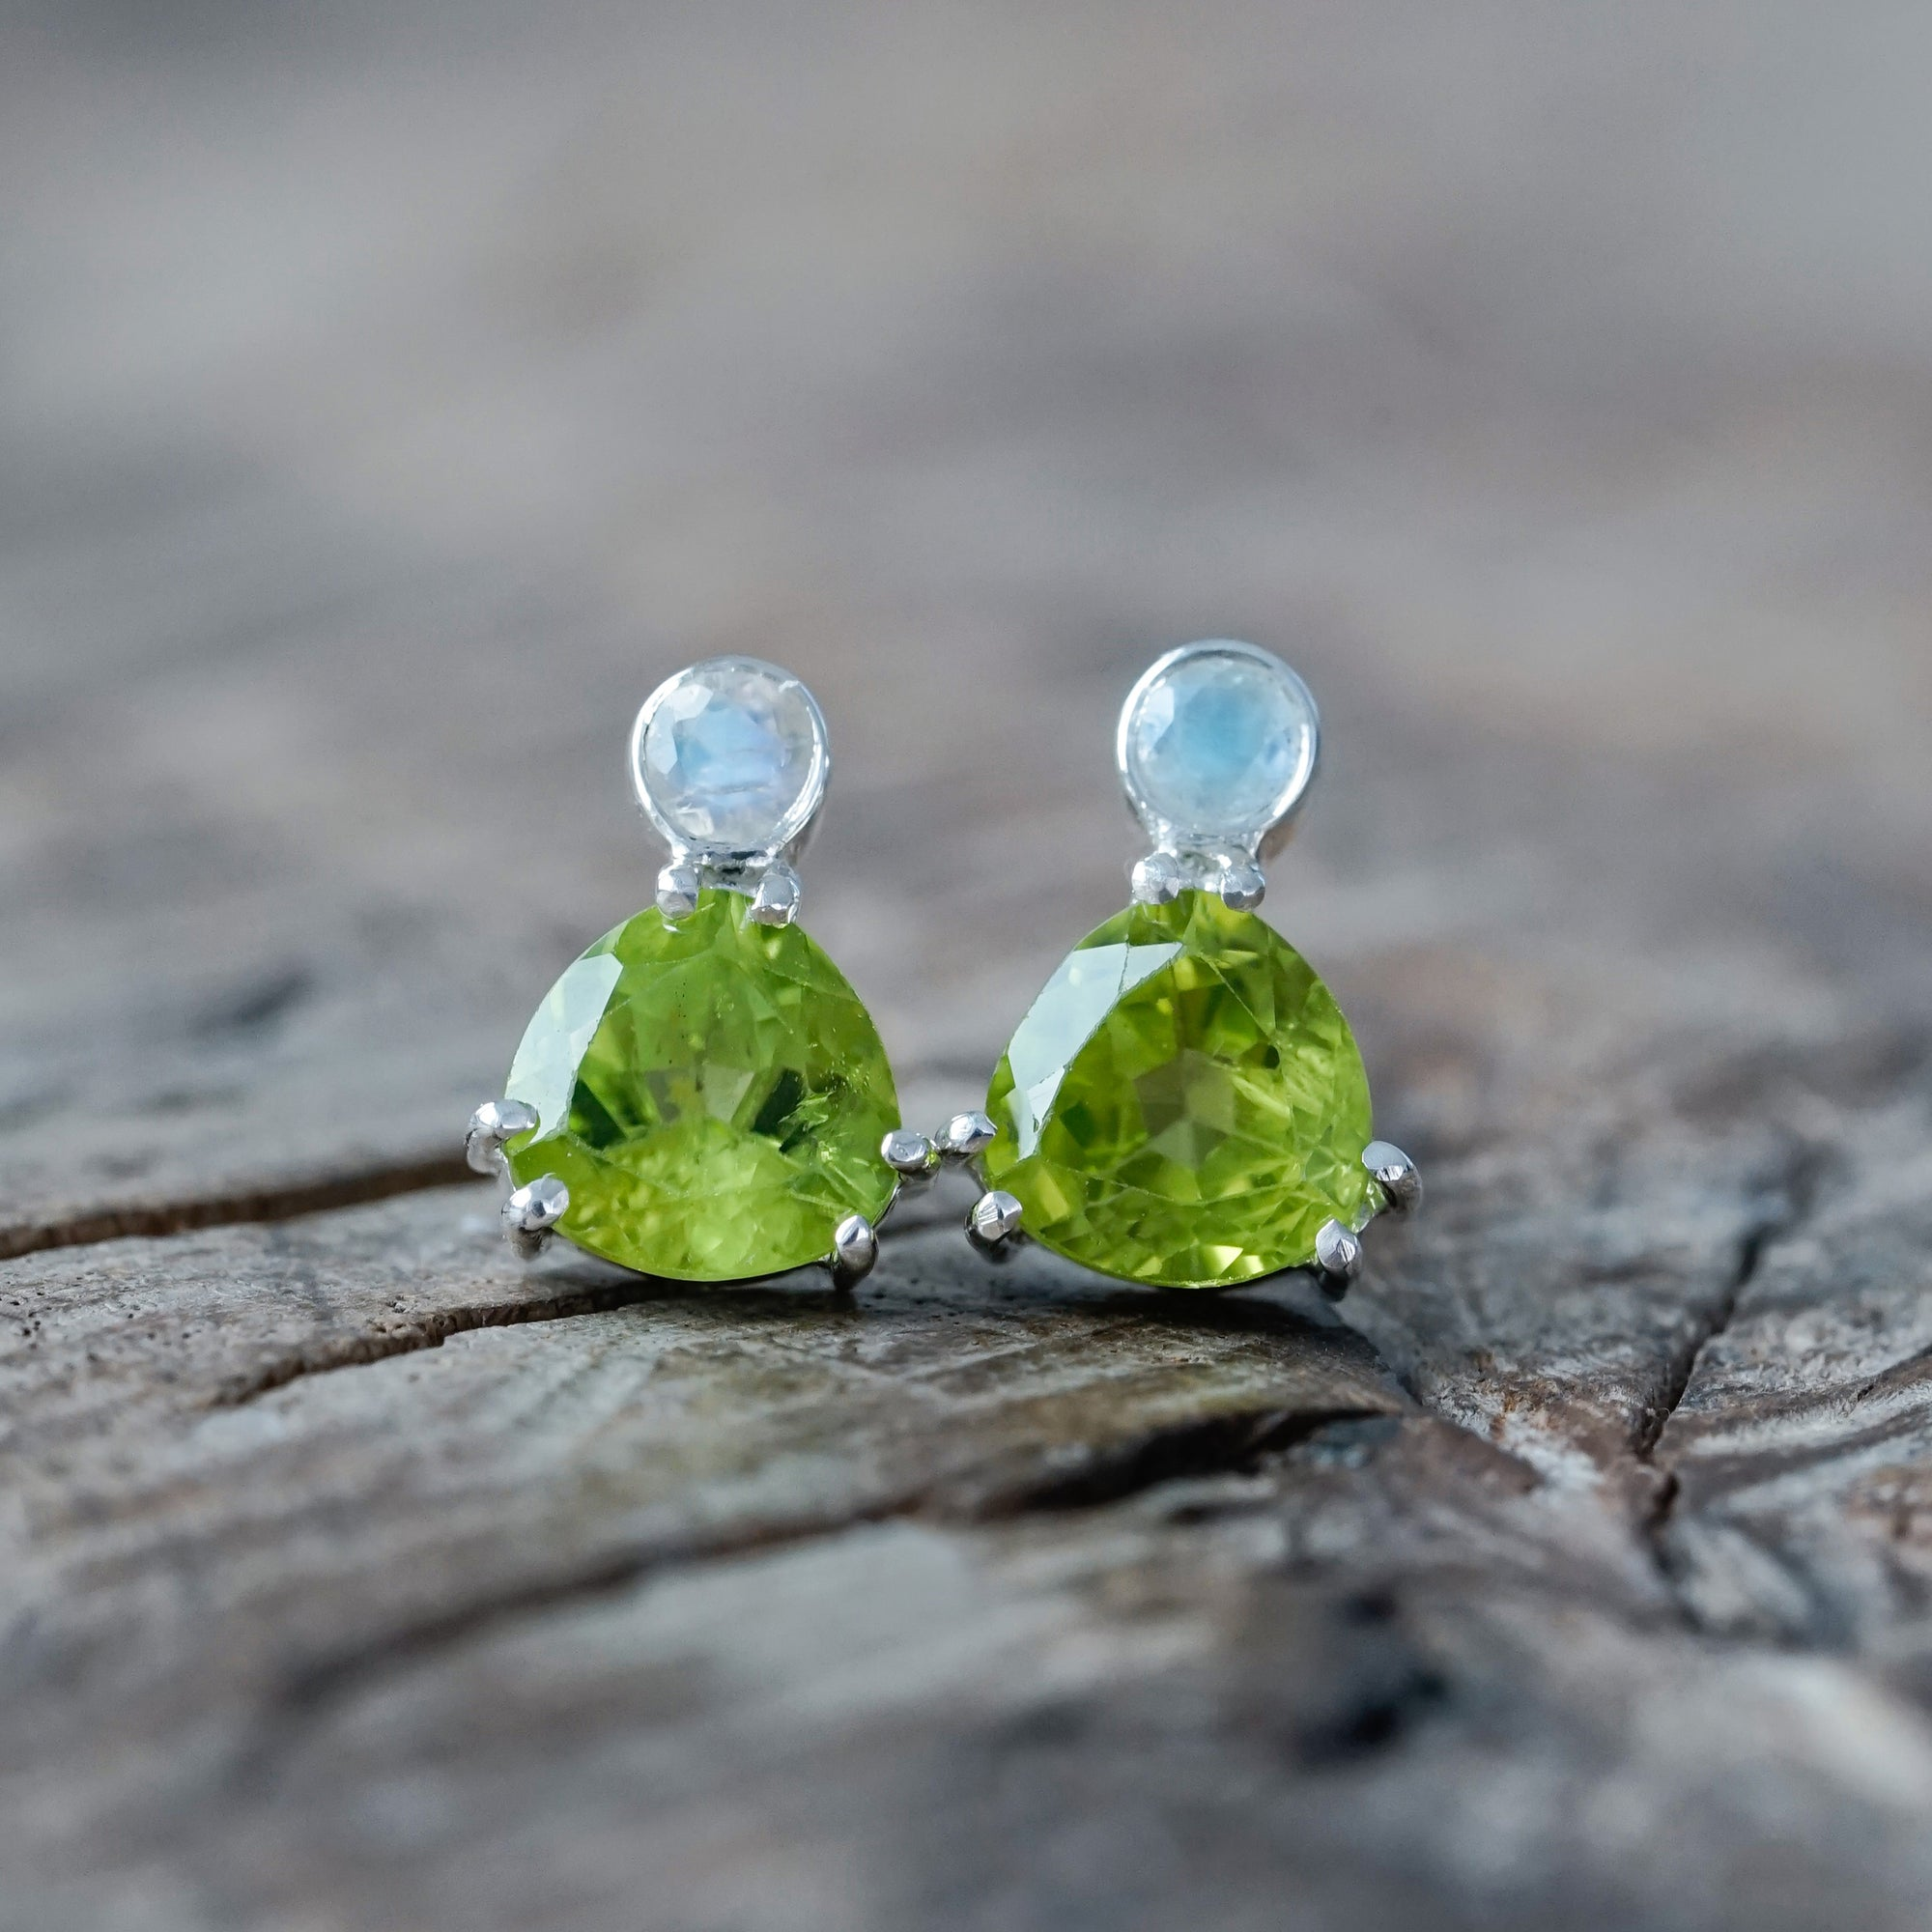 Peridot and Moonstone Earrings